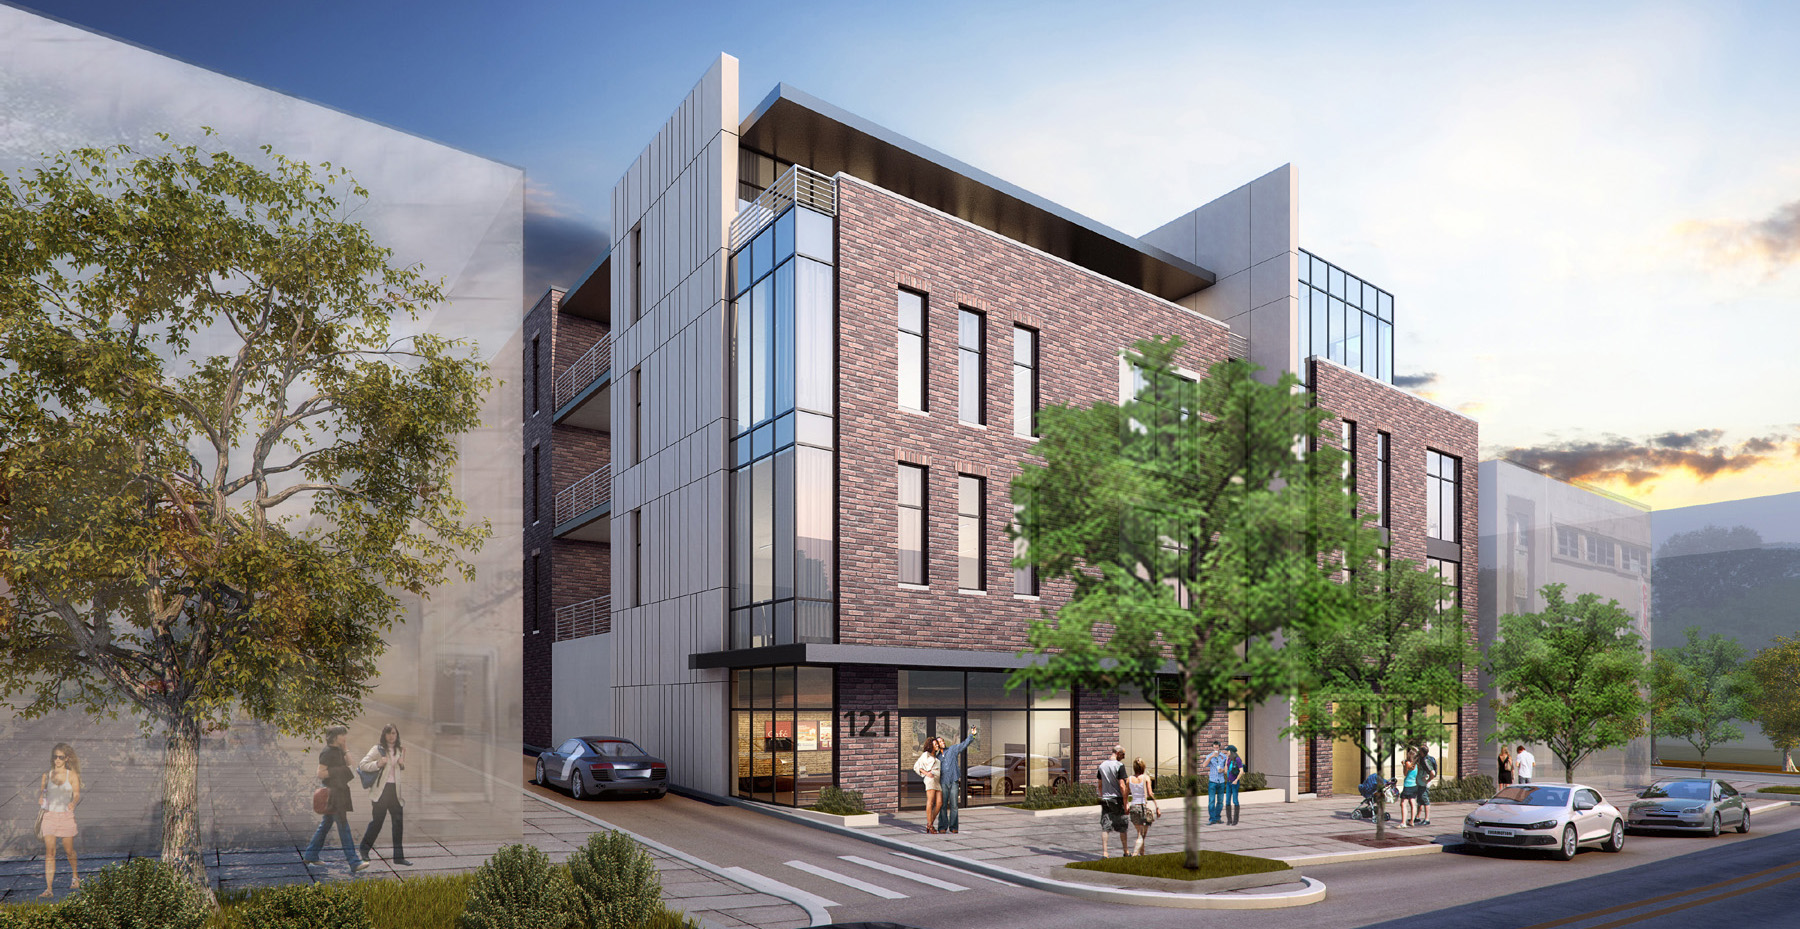 Strauser Receives Approval On 121 Kirkwood Project